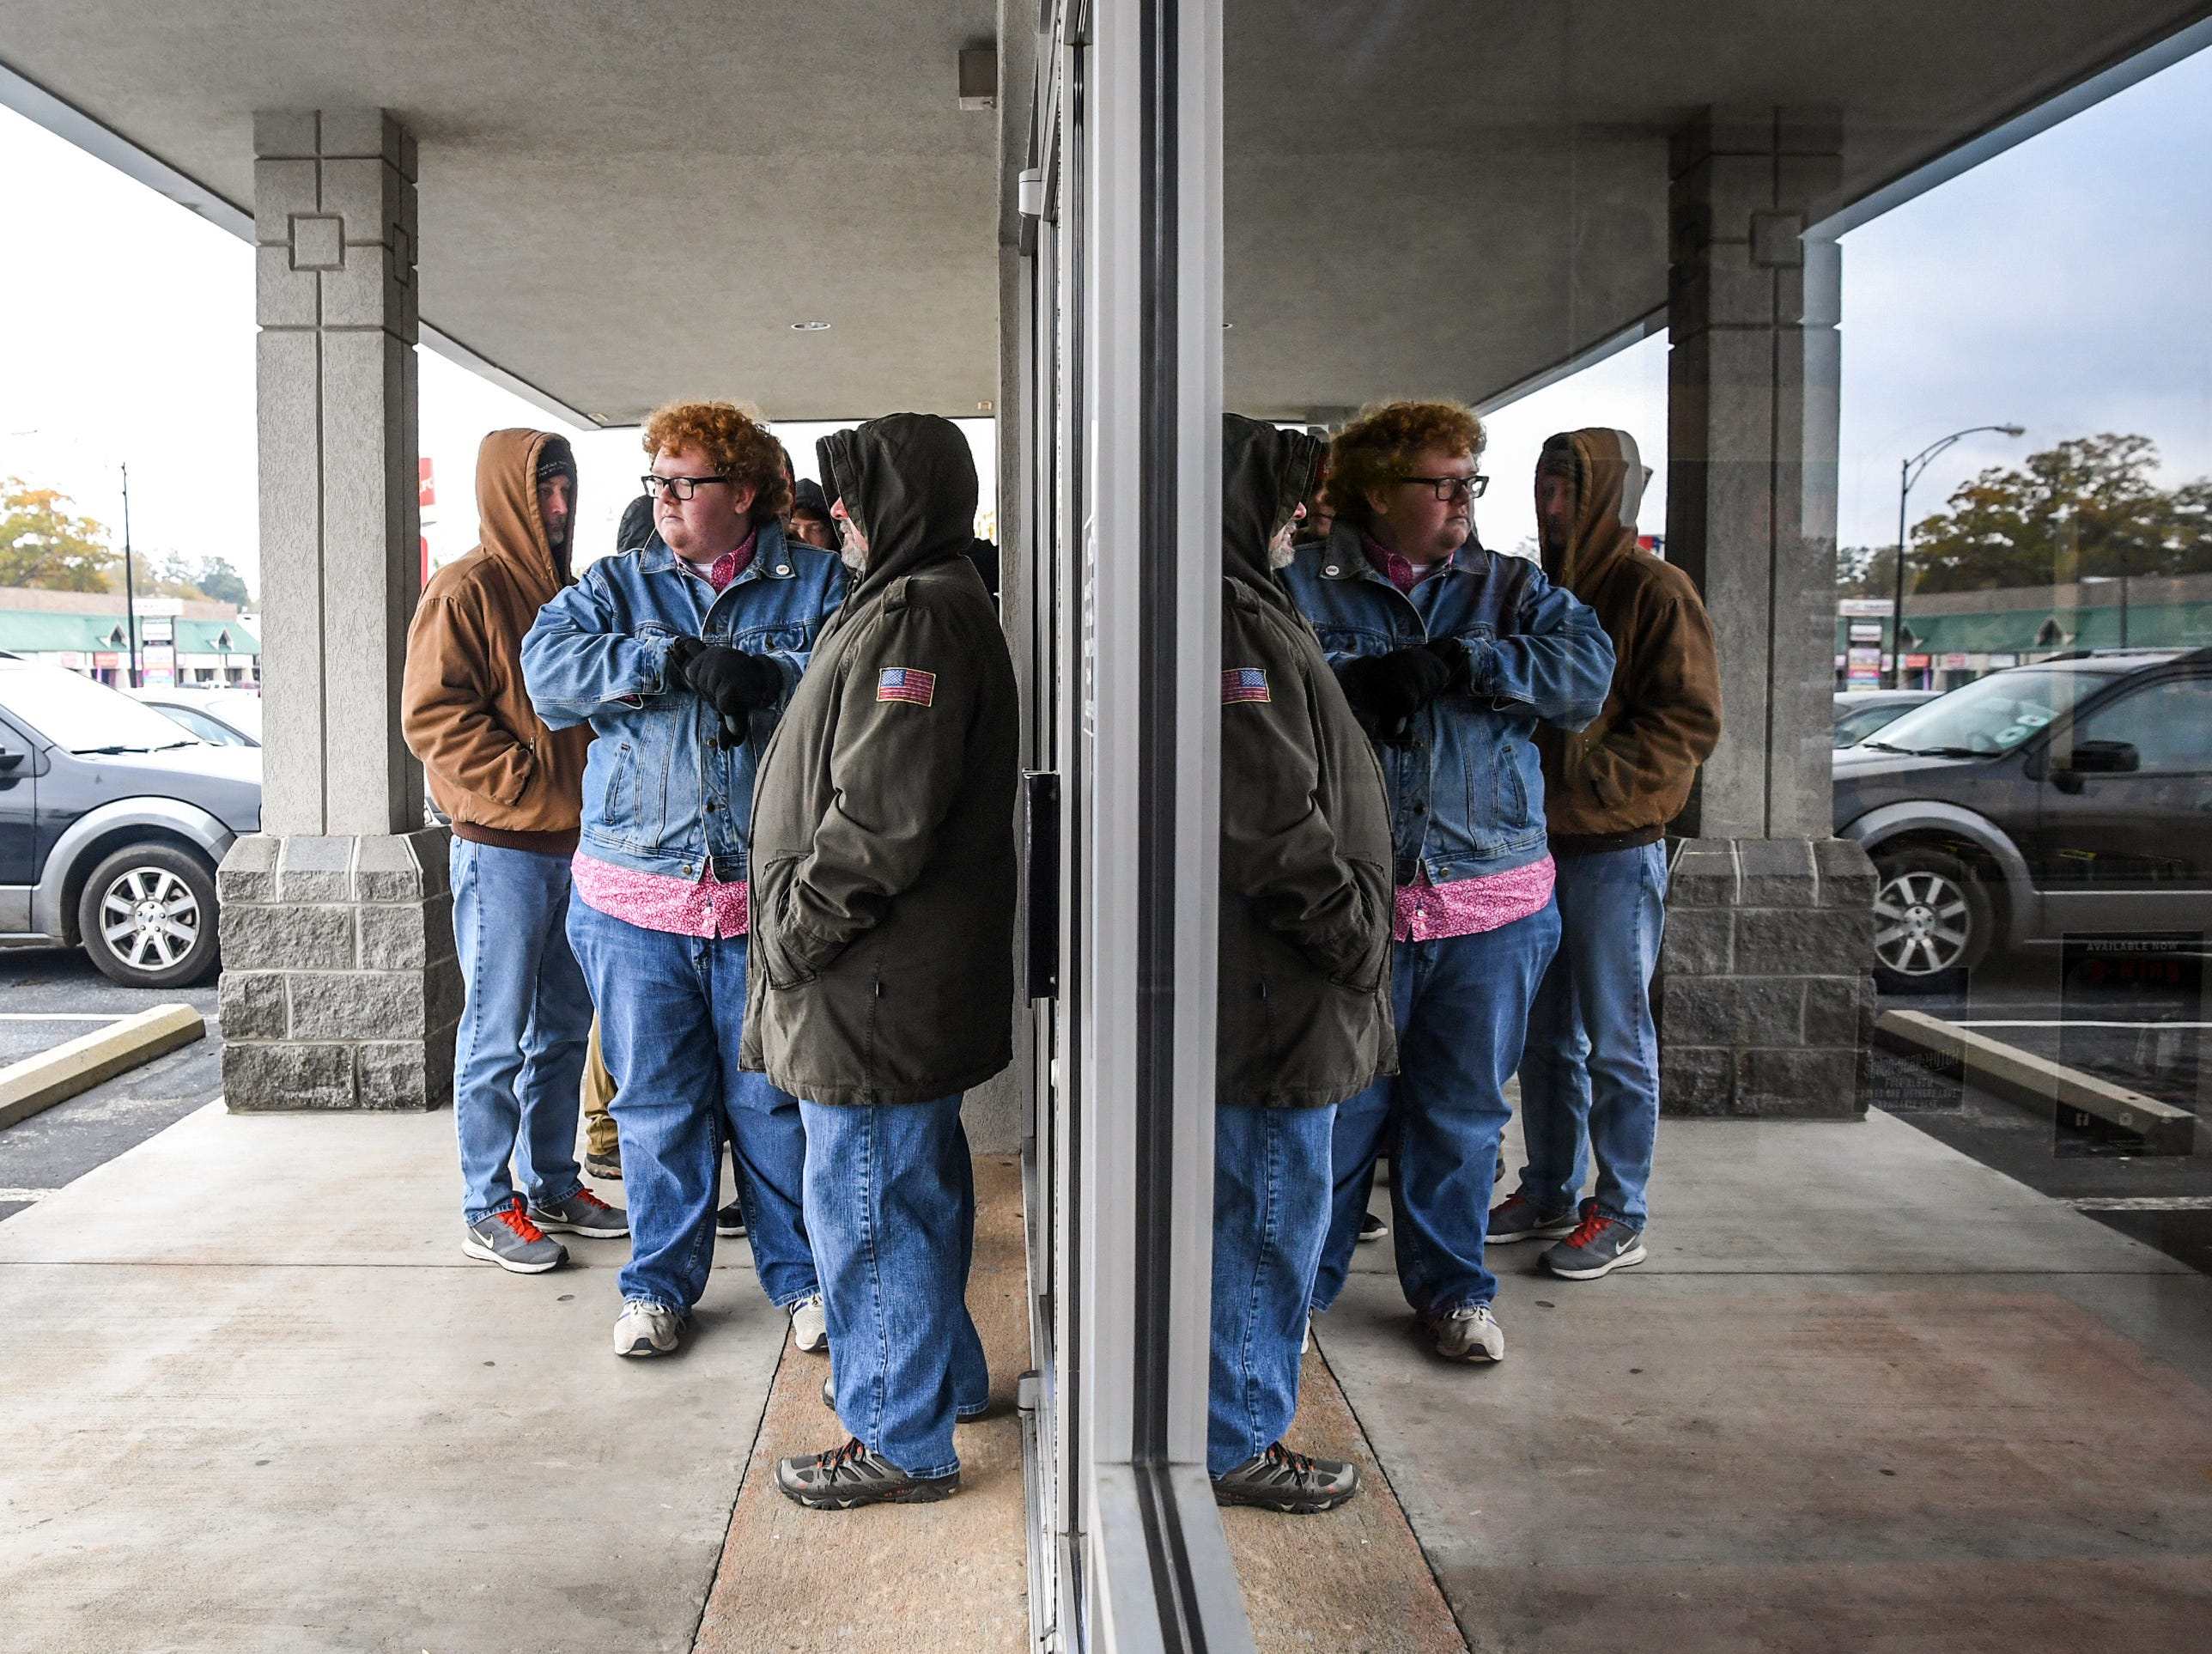 Coleman Grimes, left, and his father Robbie Grimes of Powdersville line up at Rainbow Records for Record Store Day on Black Friday in Anderson on Friday, November 23, 2018.